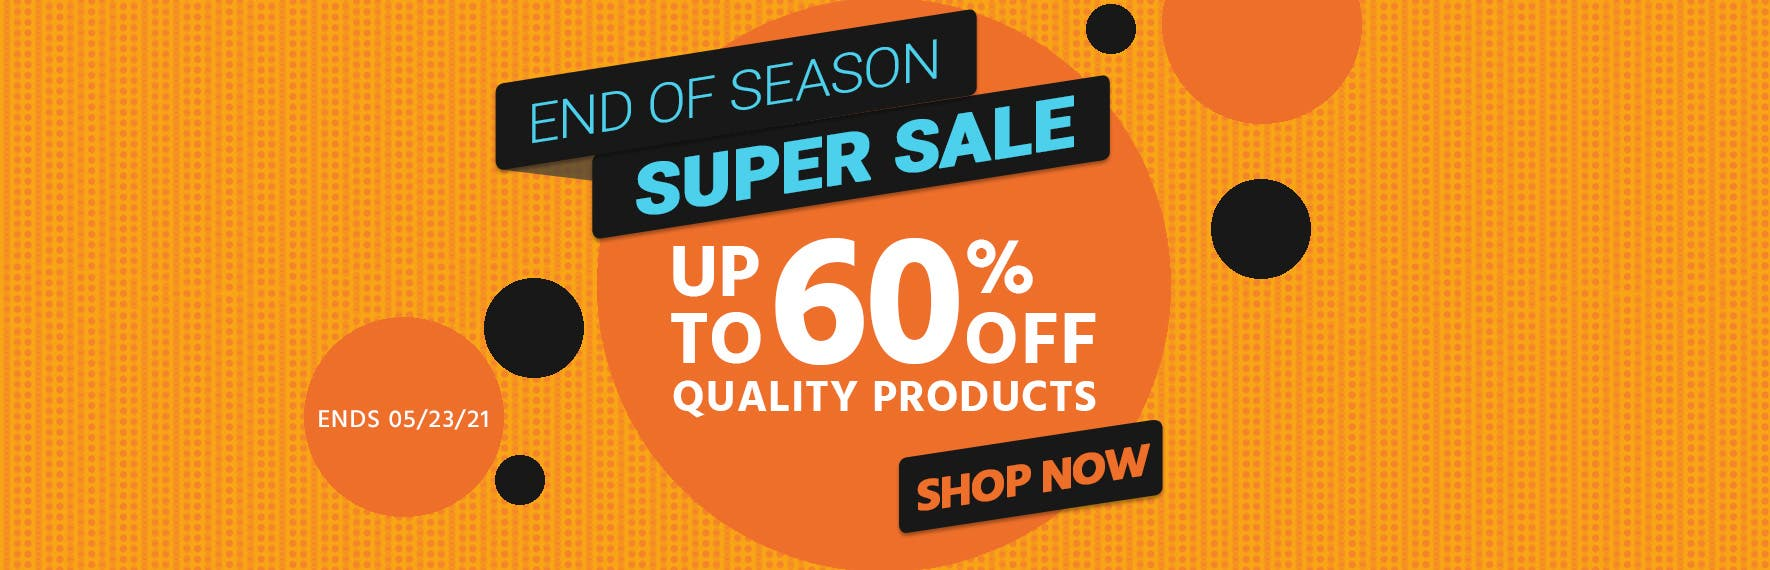 End of Season SUPER SALE Up to 60% off quality products  Ends 5/23/21 Shop Now